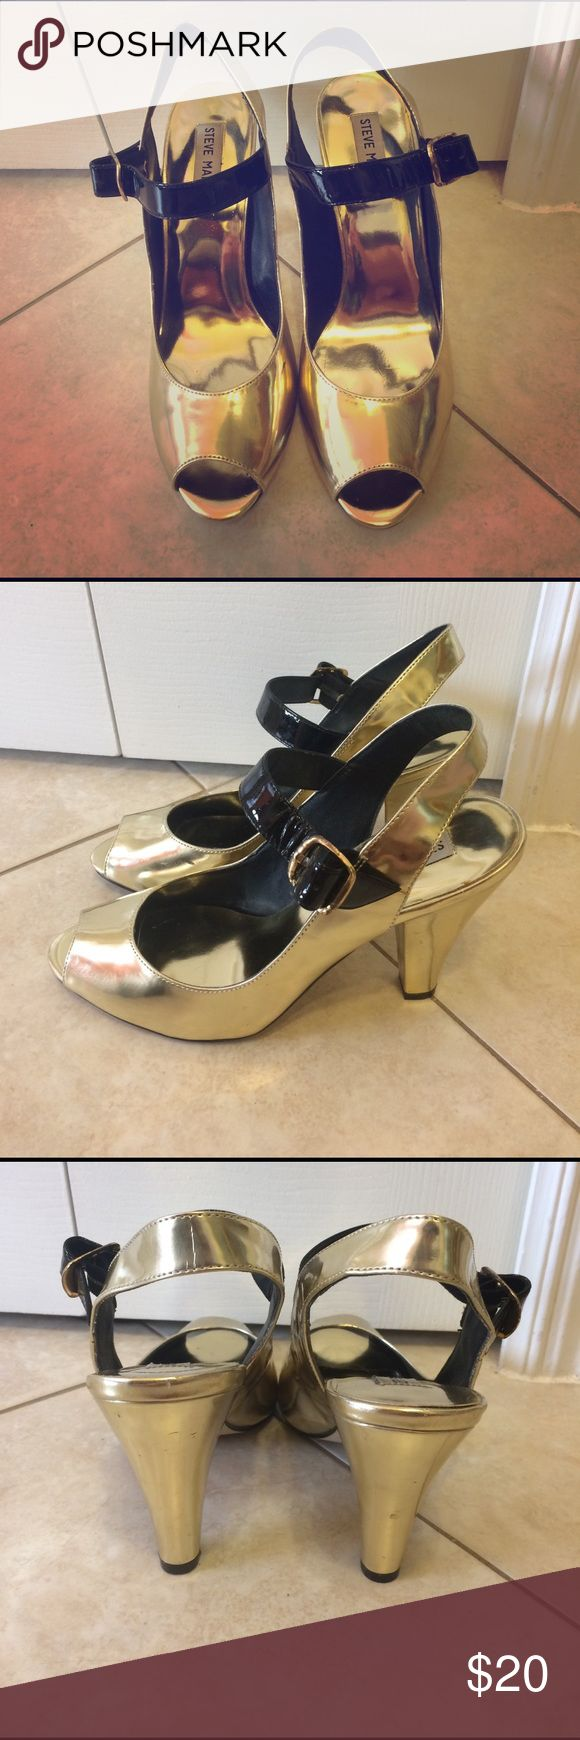 Steve Madden Gold & Black Heels 👠Gold Heels with Black Strap-Steve Madden👠Only Used Once👠Size 9 👠Small Skid Mark as Seen in Display Photo👠$20 OBO Steve Madden Shoes Heels